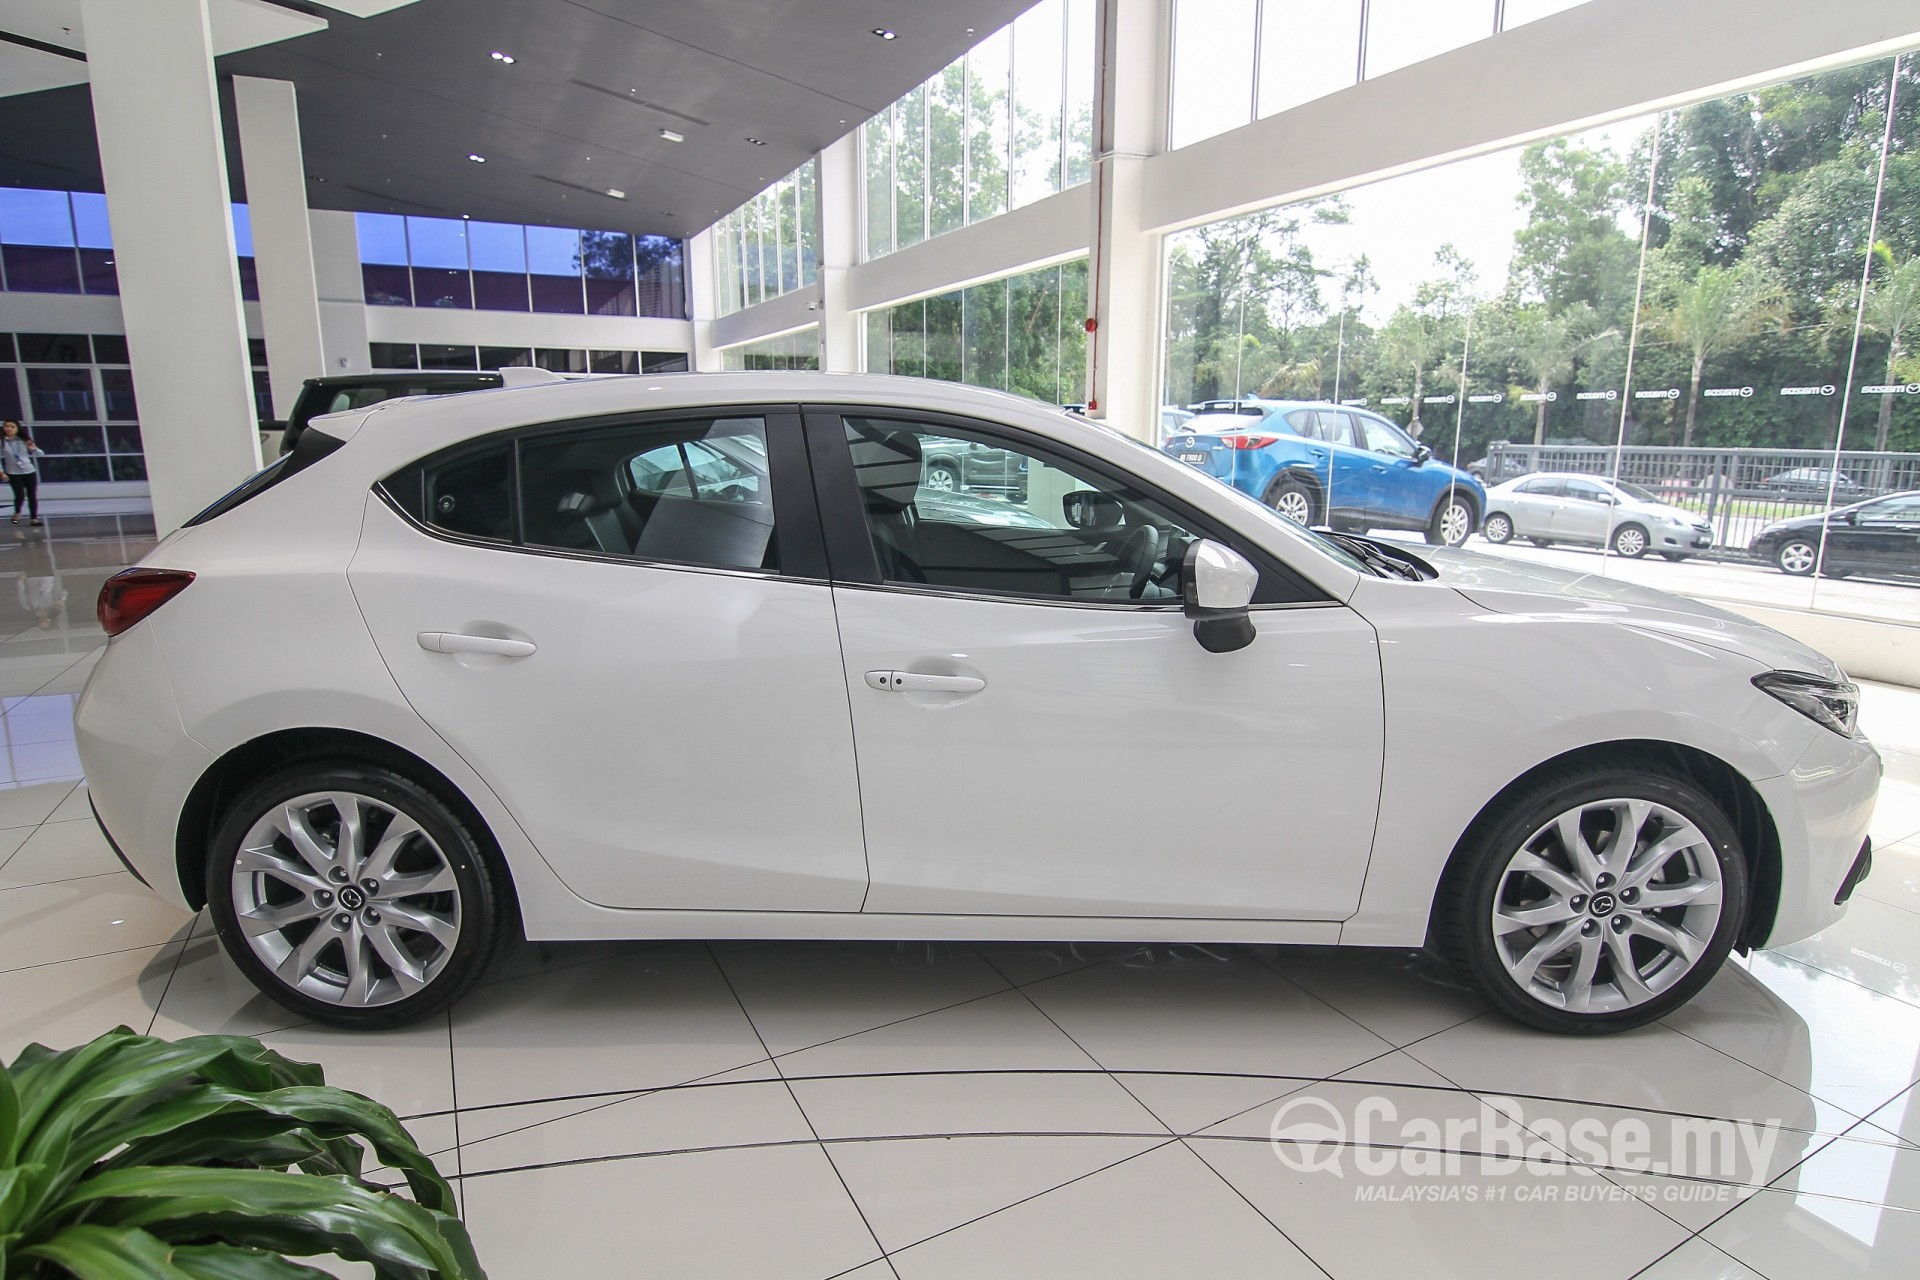 mazda 3 hatchback bm 2015 exterior image 20593 in malaysia reviews specs prices. Black Bedroom Furniture Sets. Home Design Ideas